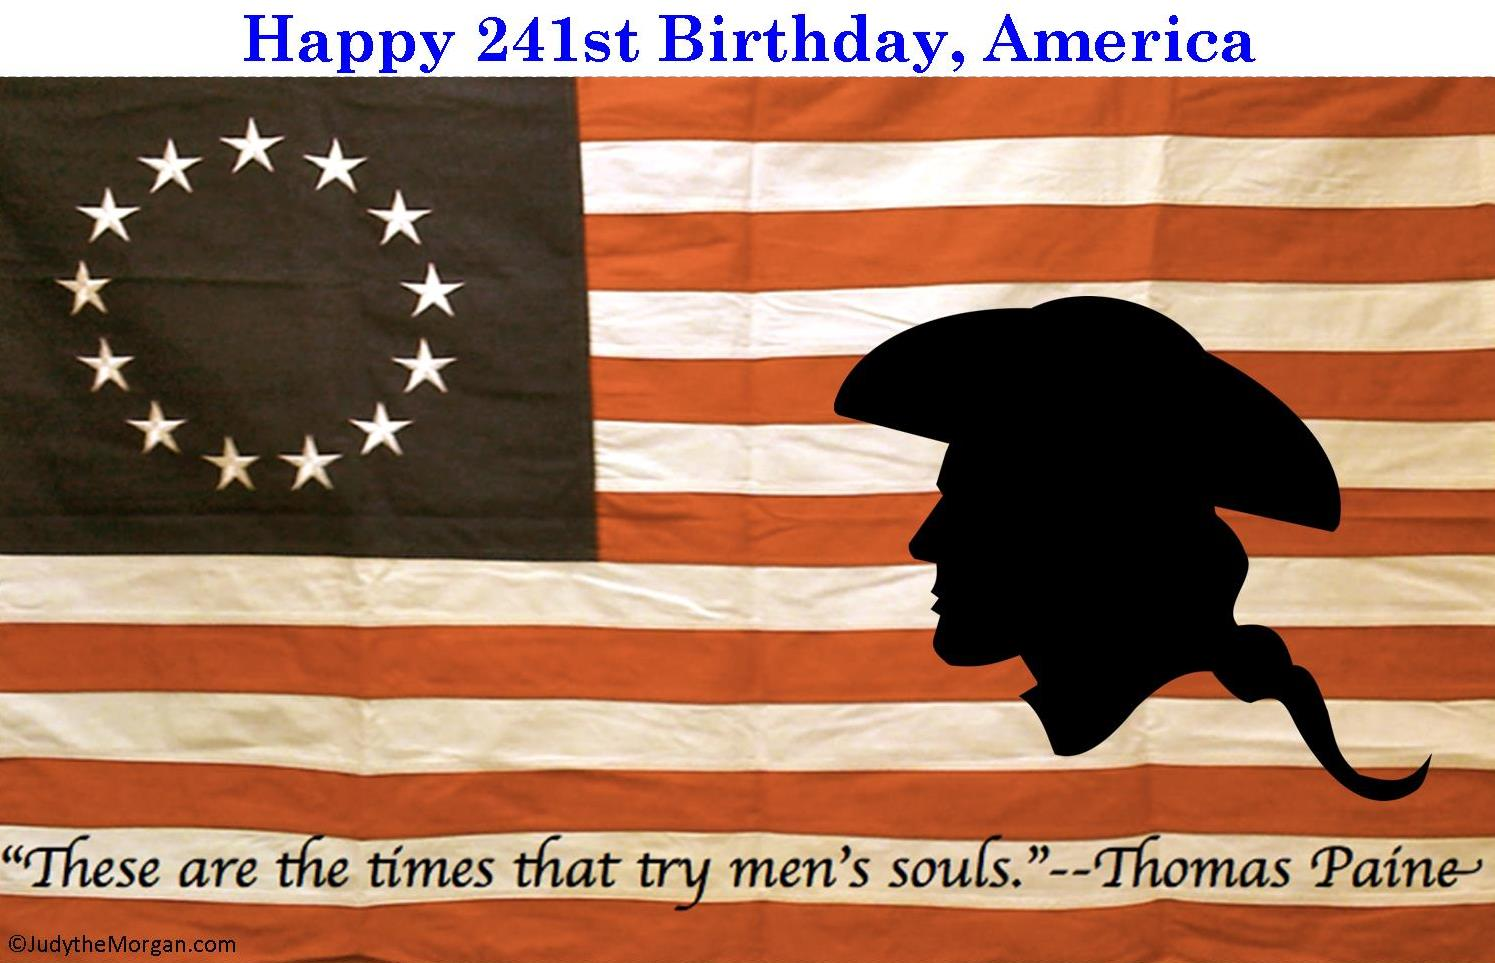 essays written by thomas paine Essays essay on thomas paine, father of the american revolution common sense was written by thomas paine in 1776 after he quickly sided with the.